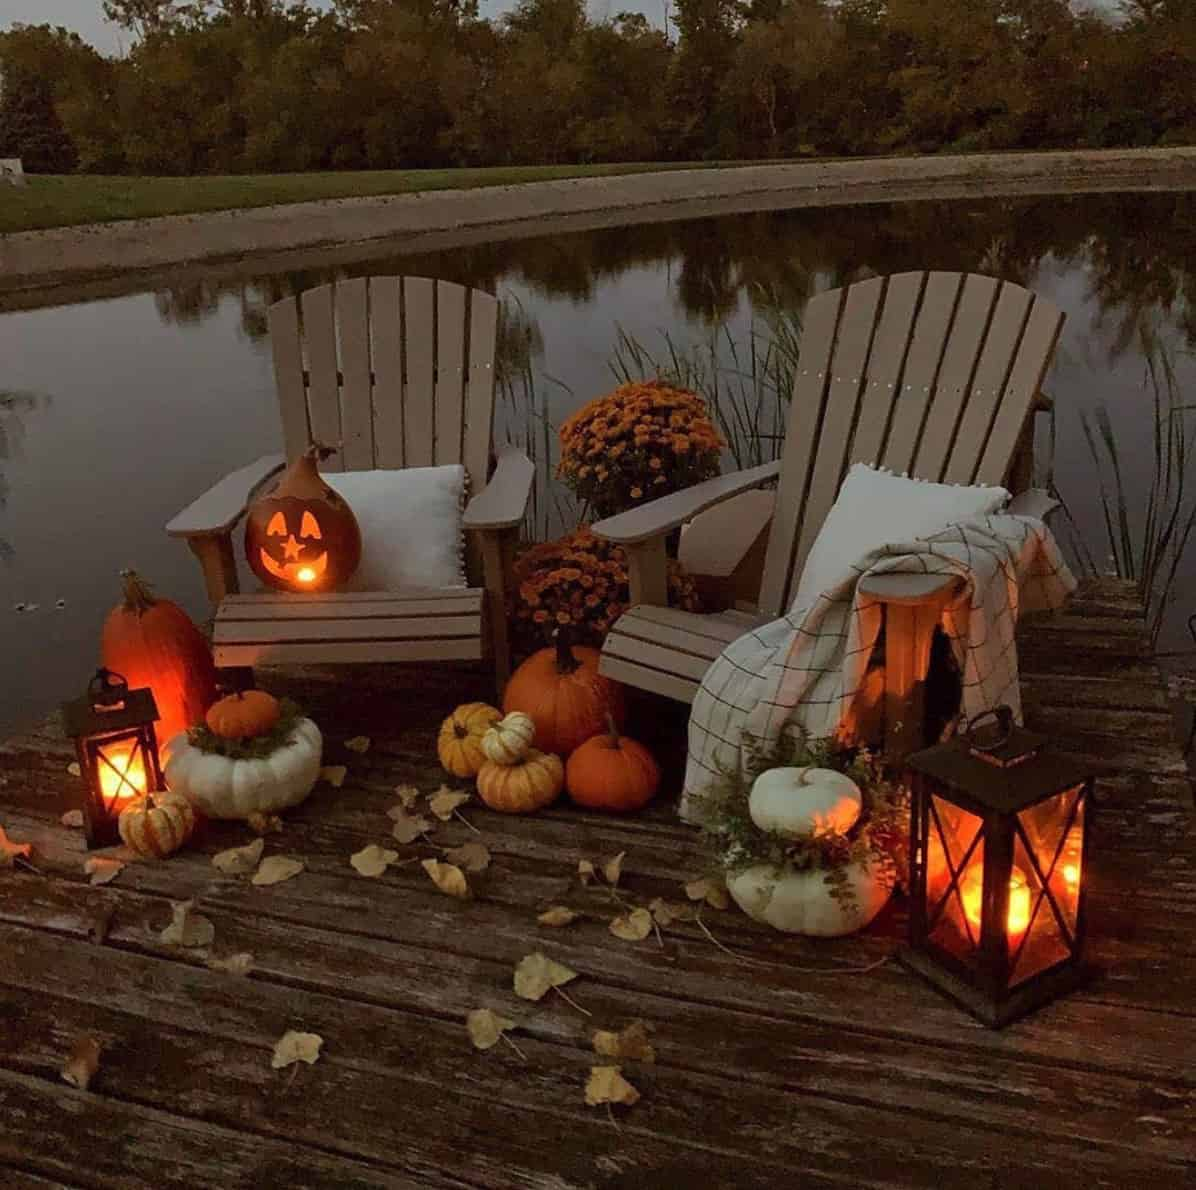 DIY-Ideas-For-Decorating-Your-Home-With-Pumpkins-outdoor-dock